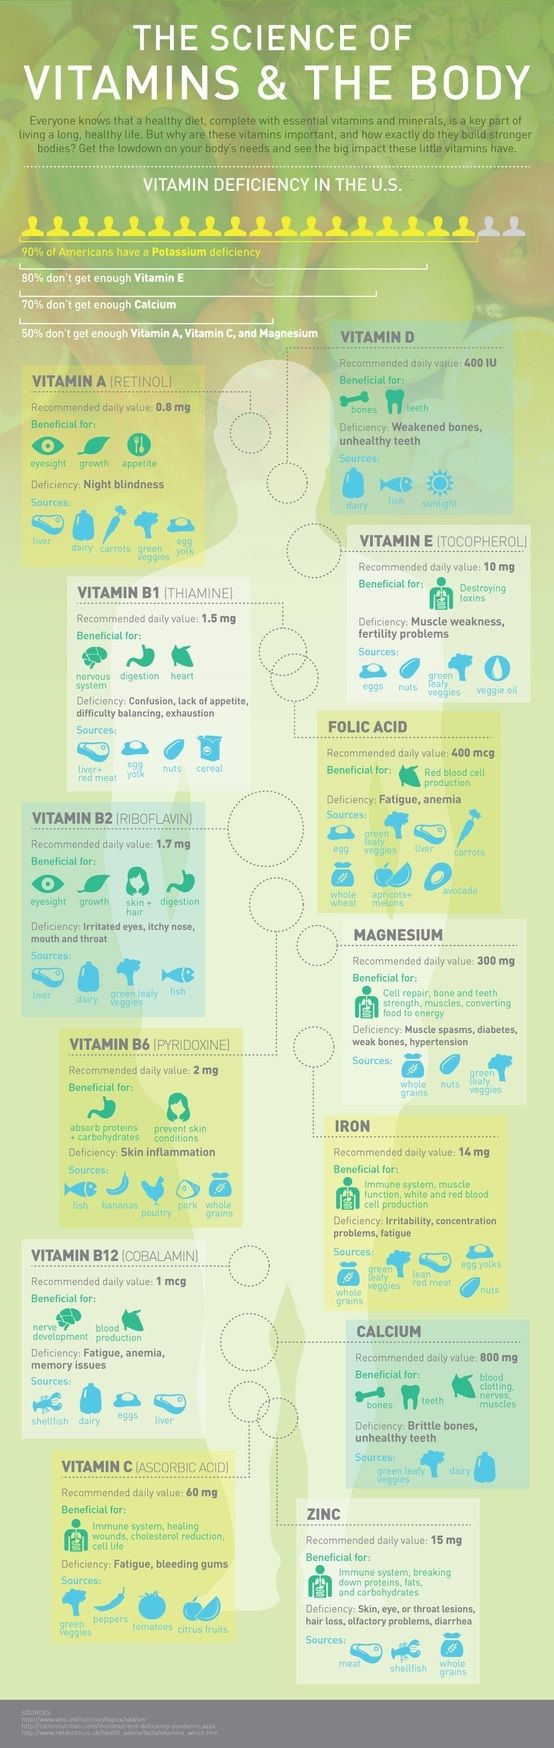 The Science Behind Vitamins & Your Body Visit: https://youtu.be/3rzY7Ew8E_s